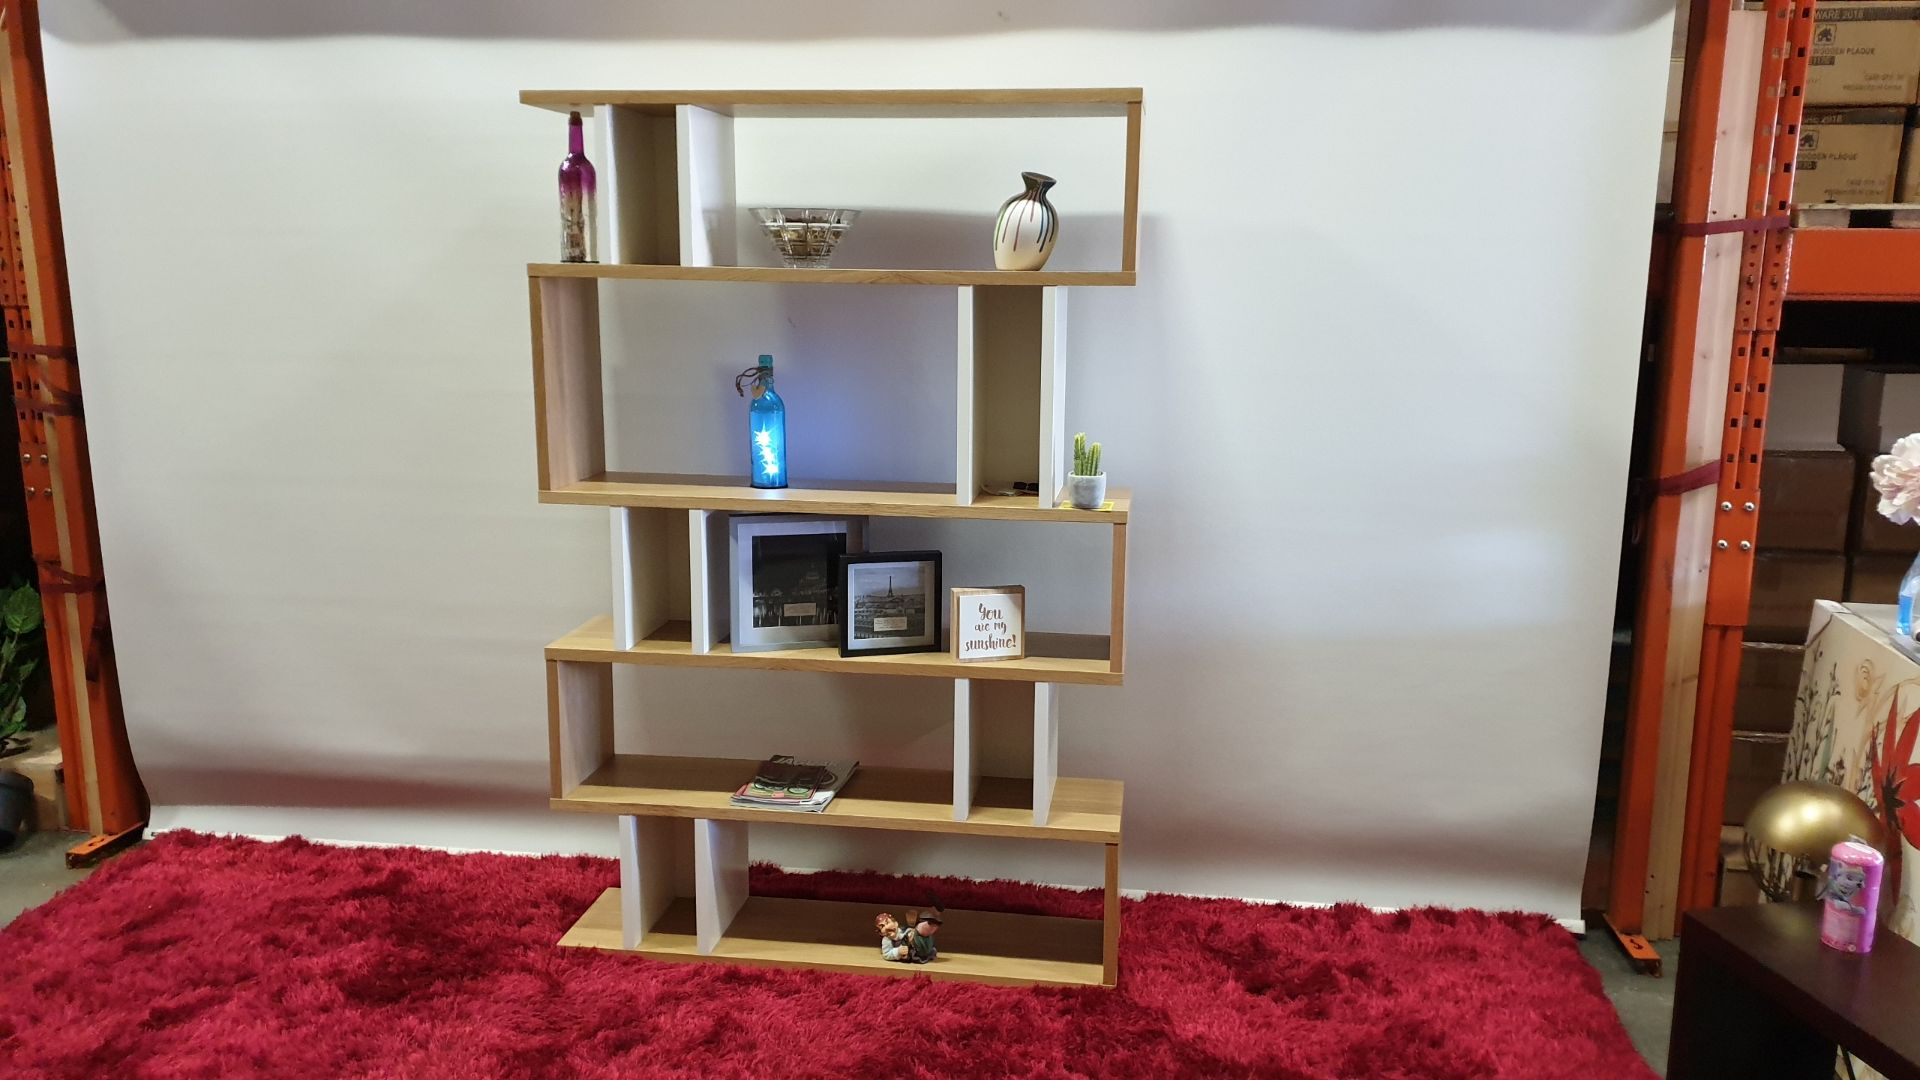 Lot 252 - BRAND NEW CONTENT BY TERRANCE CONRAN COUNTER BALANCE TALL SHELVING COLOUR OAK / WHITE SIZE H1800 X